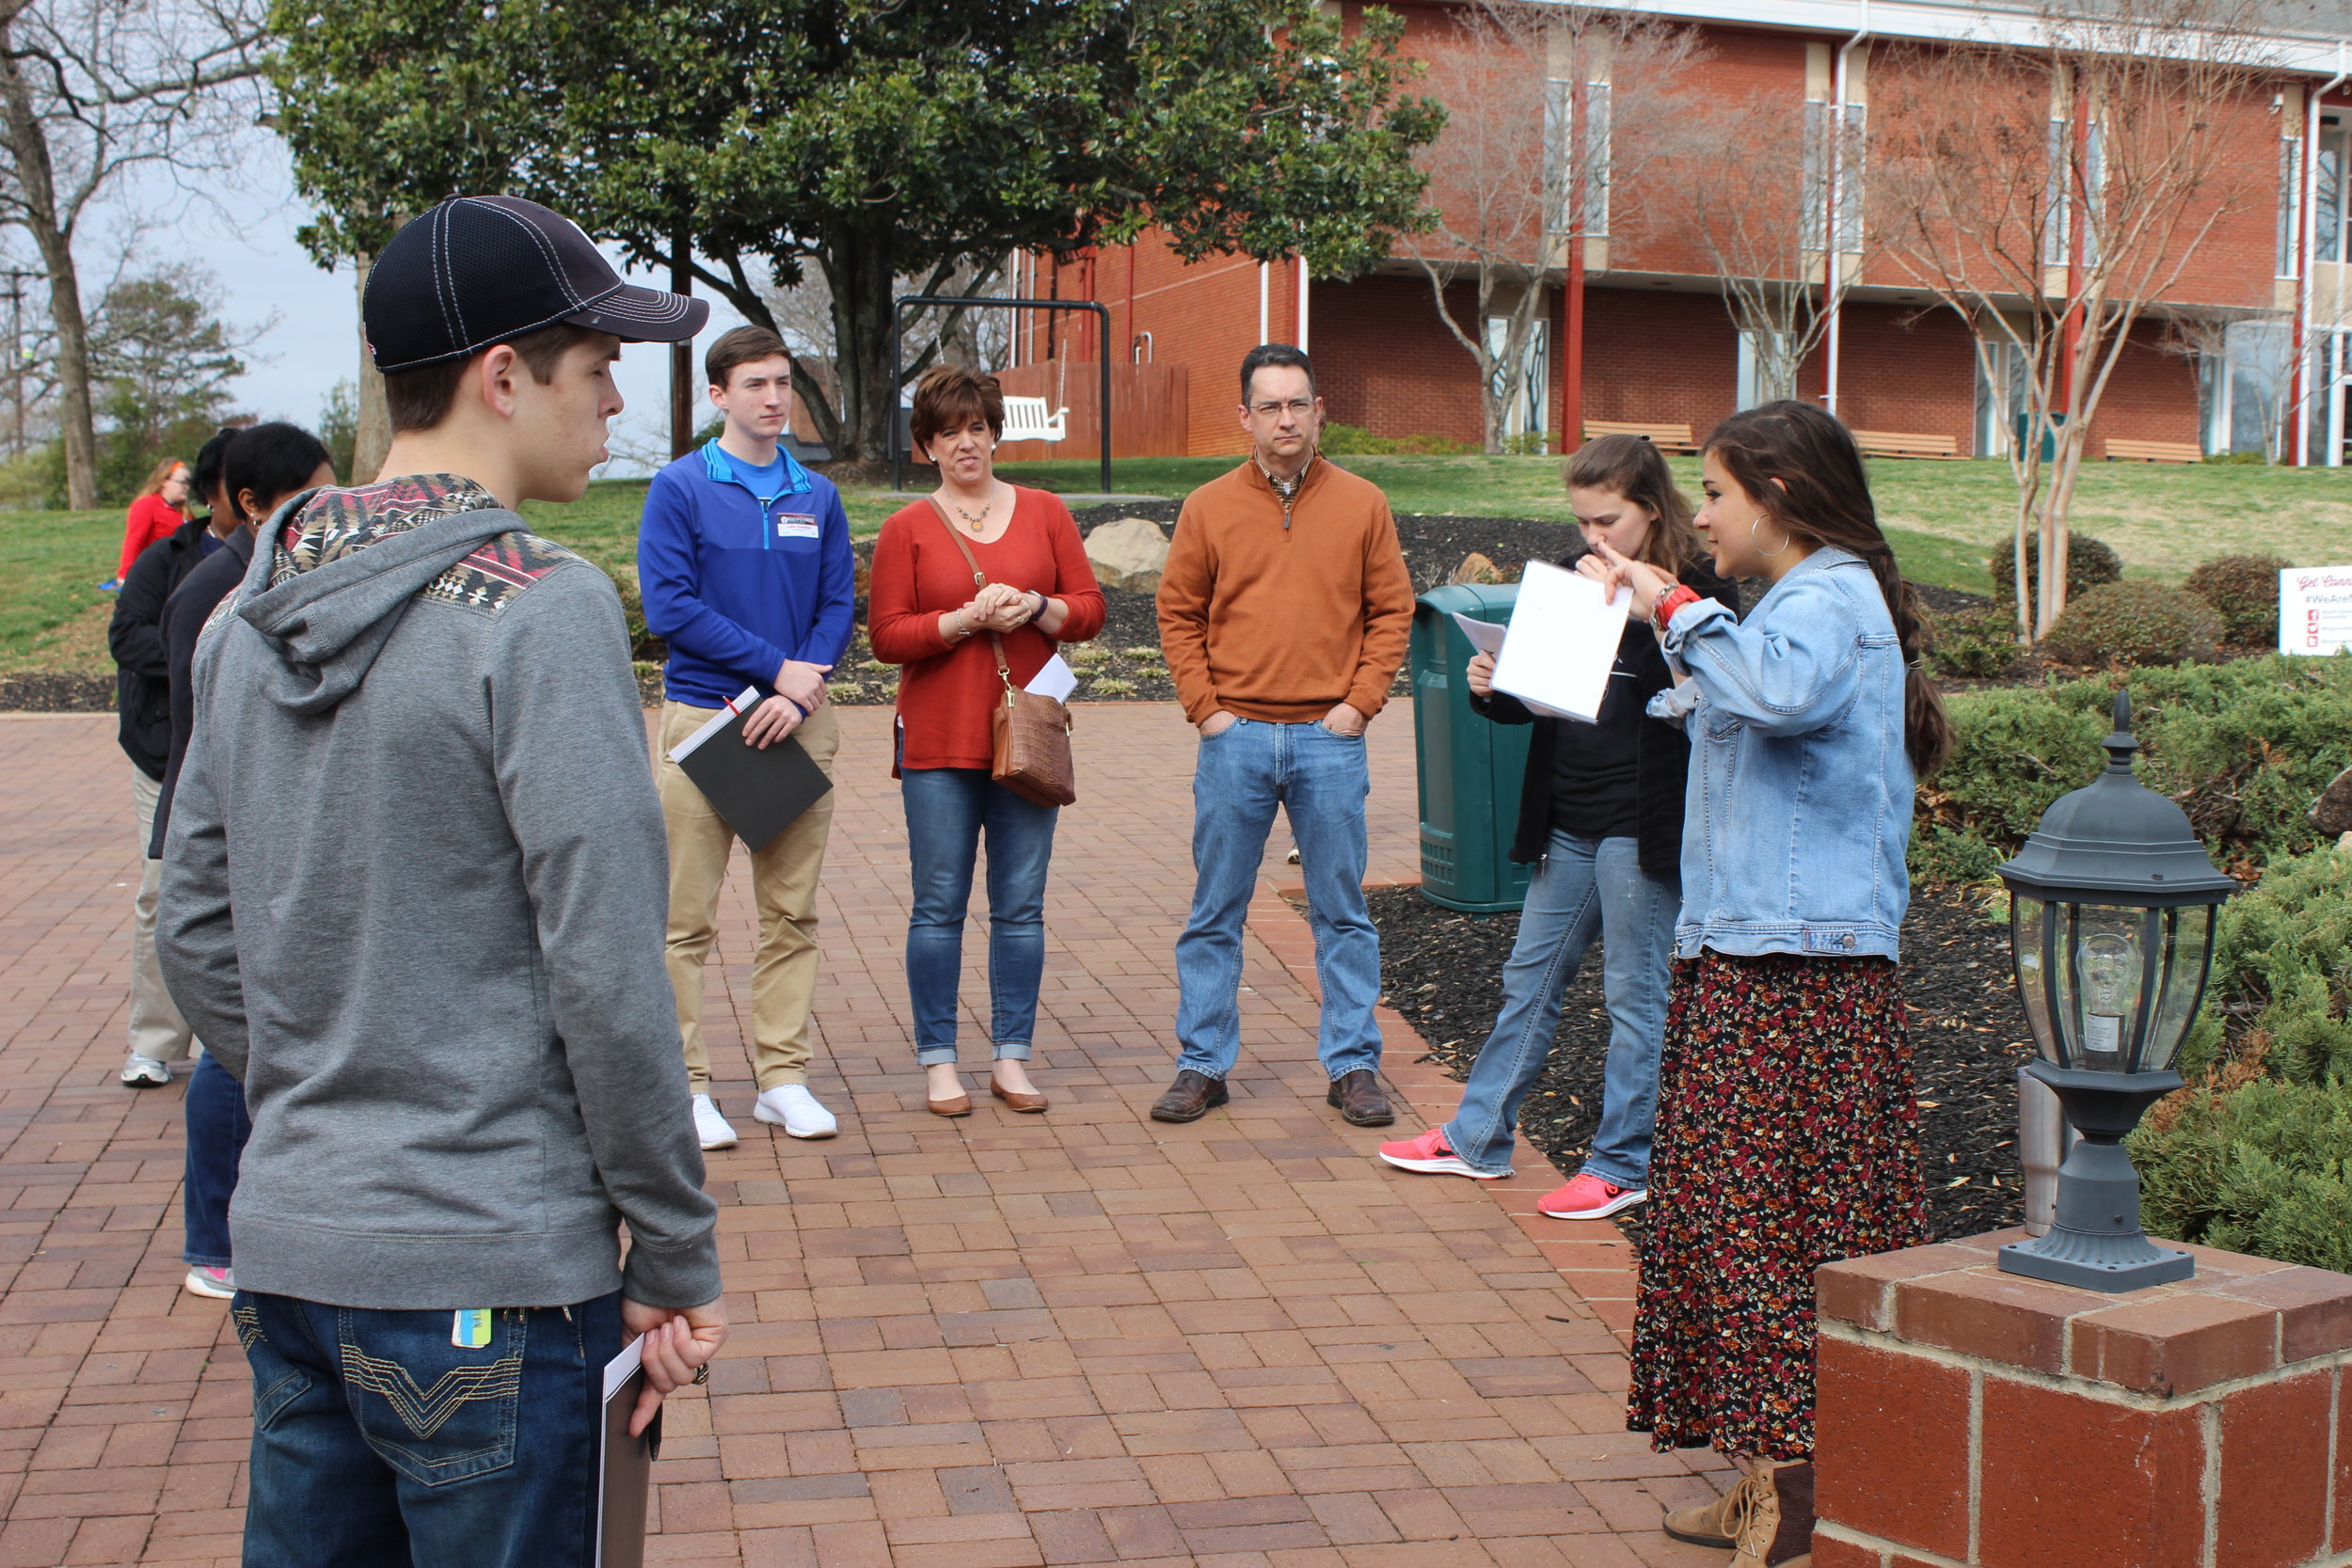 Last but not least,future students learned about chapel and the wonderful opportunity to worship God that it provides from campus ambassador Sam Perez.